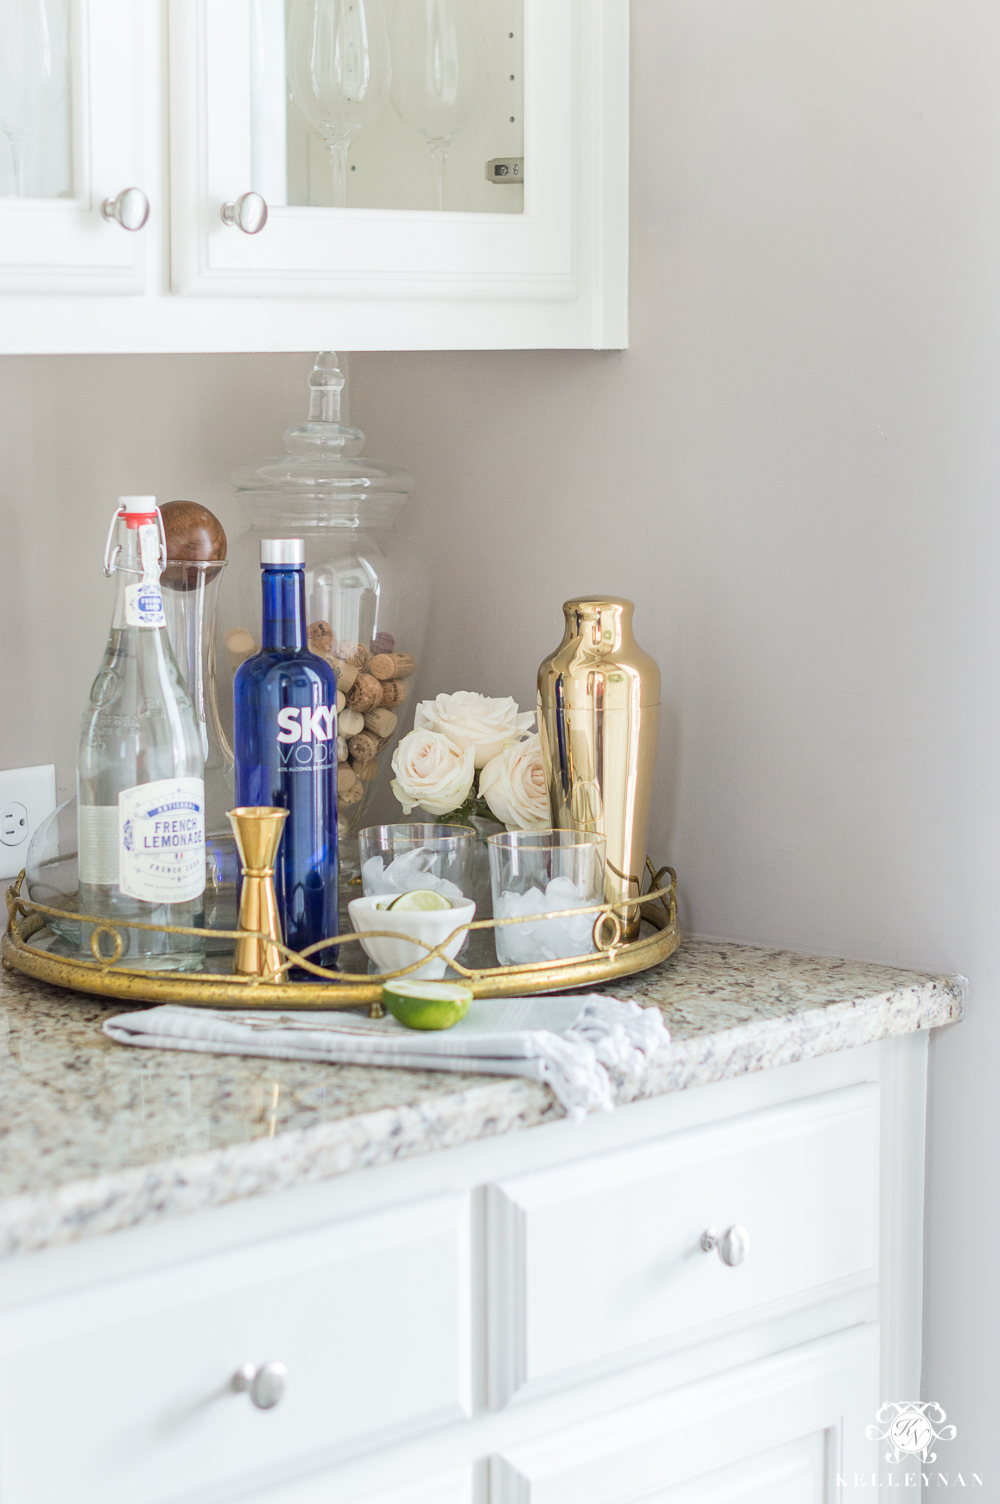 Decorated Butler's Pantry Surface and Organization